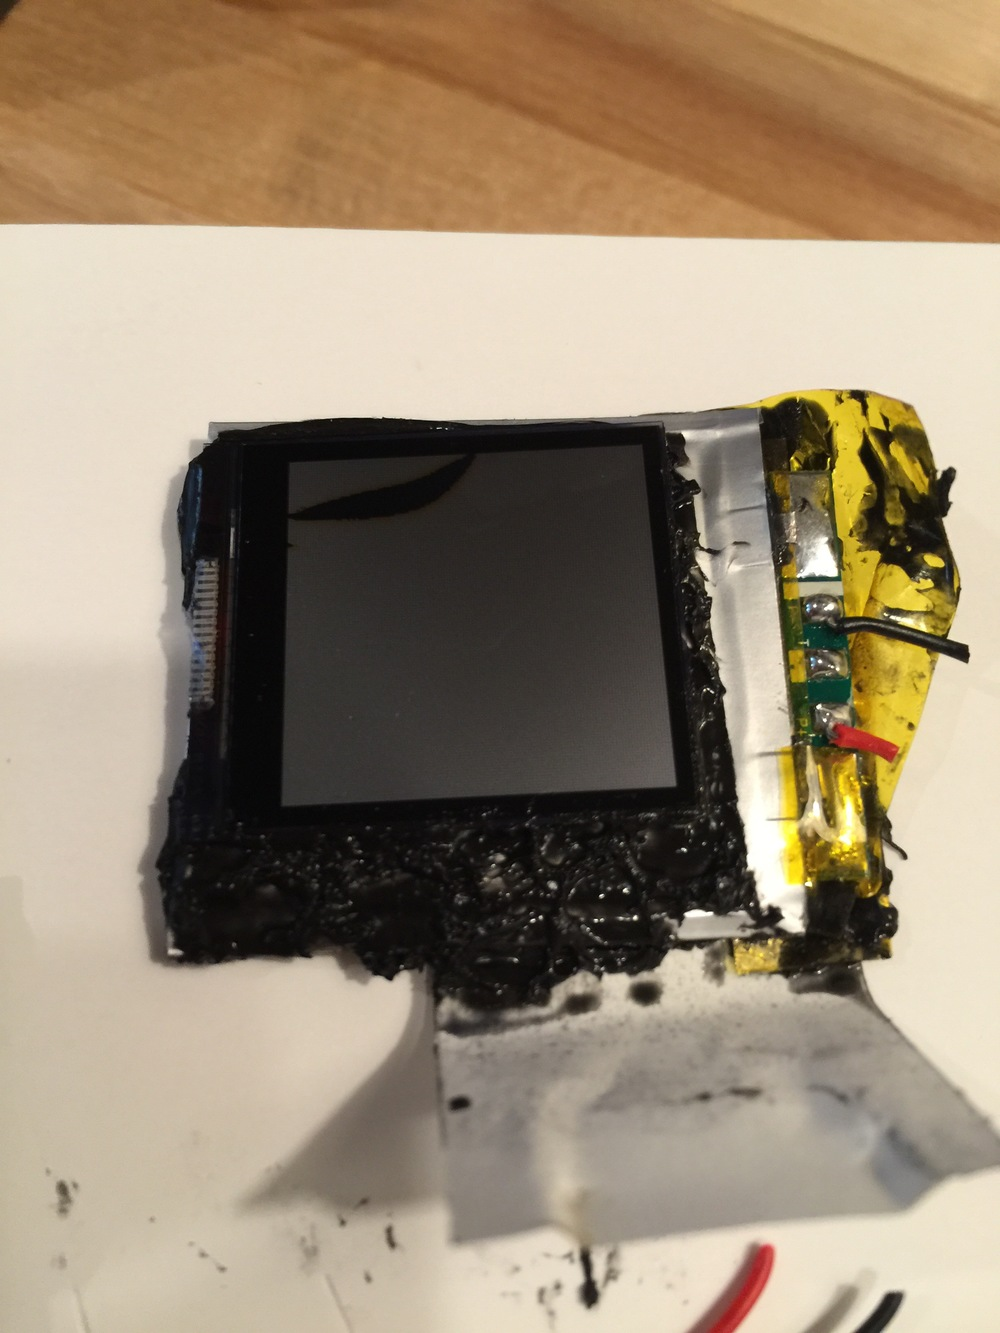 The screen is tar glued to the battery.  I damaged the screen while opening up the unit.